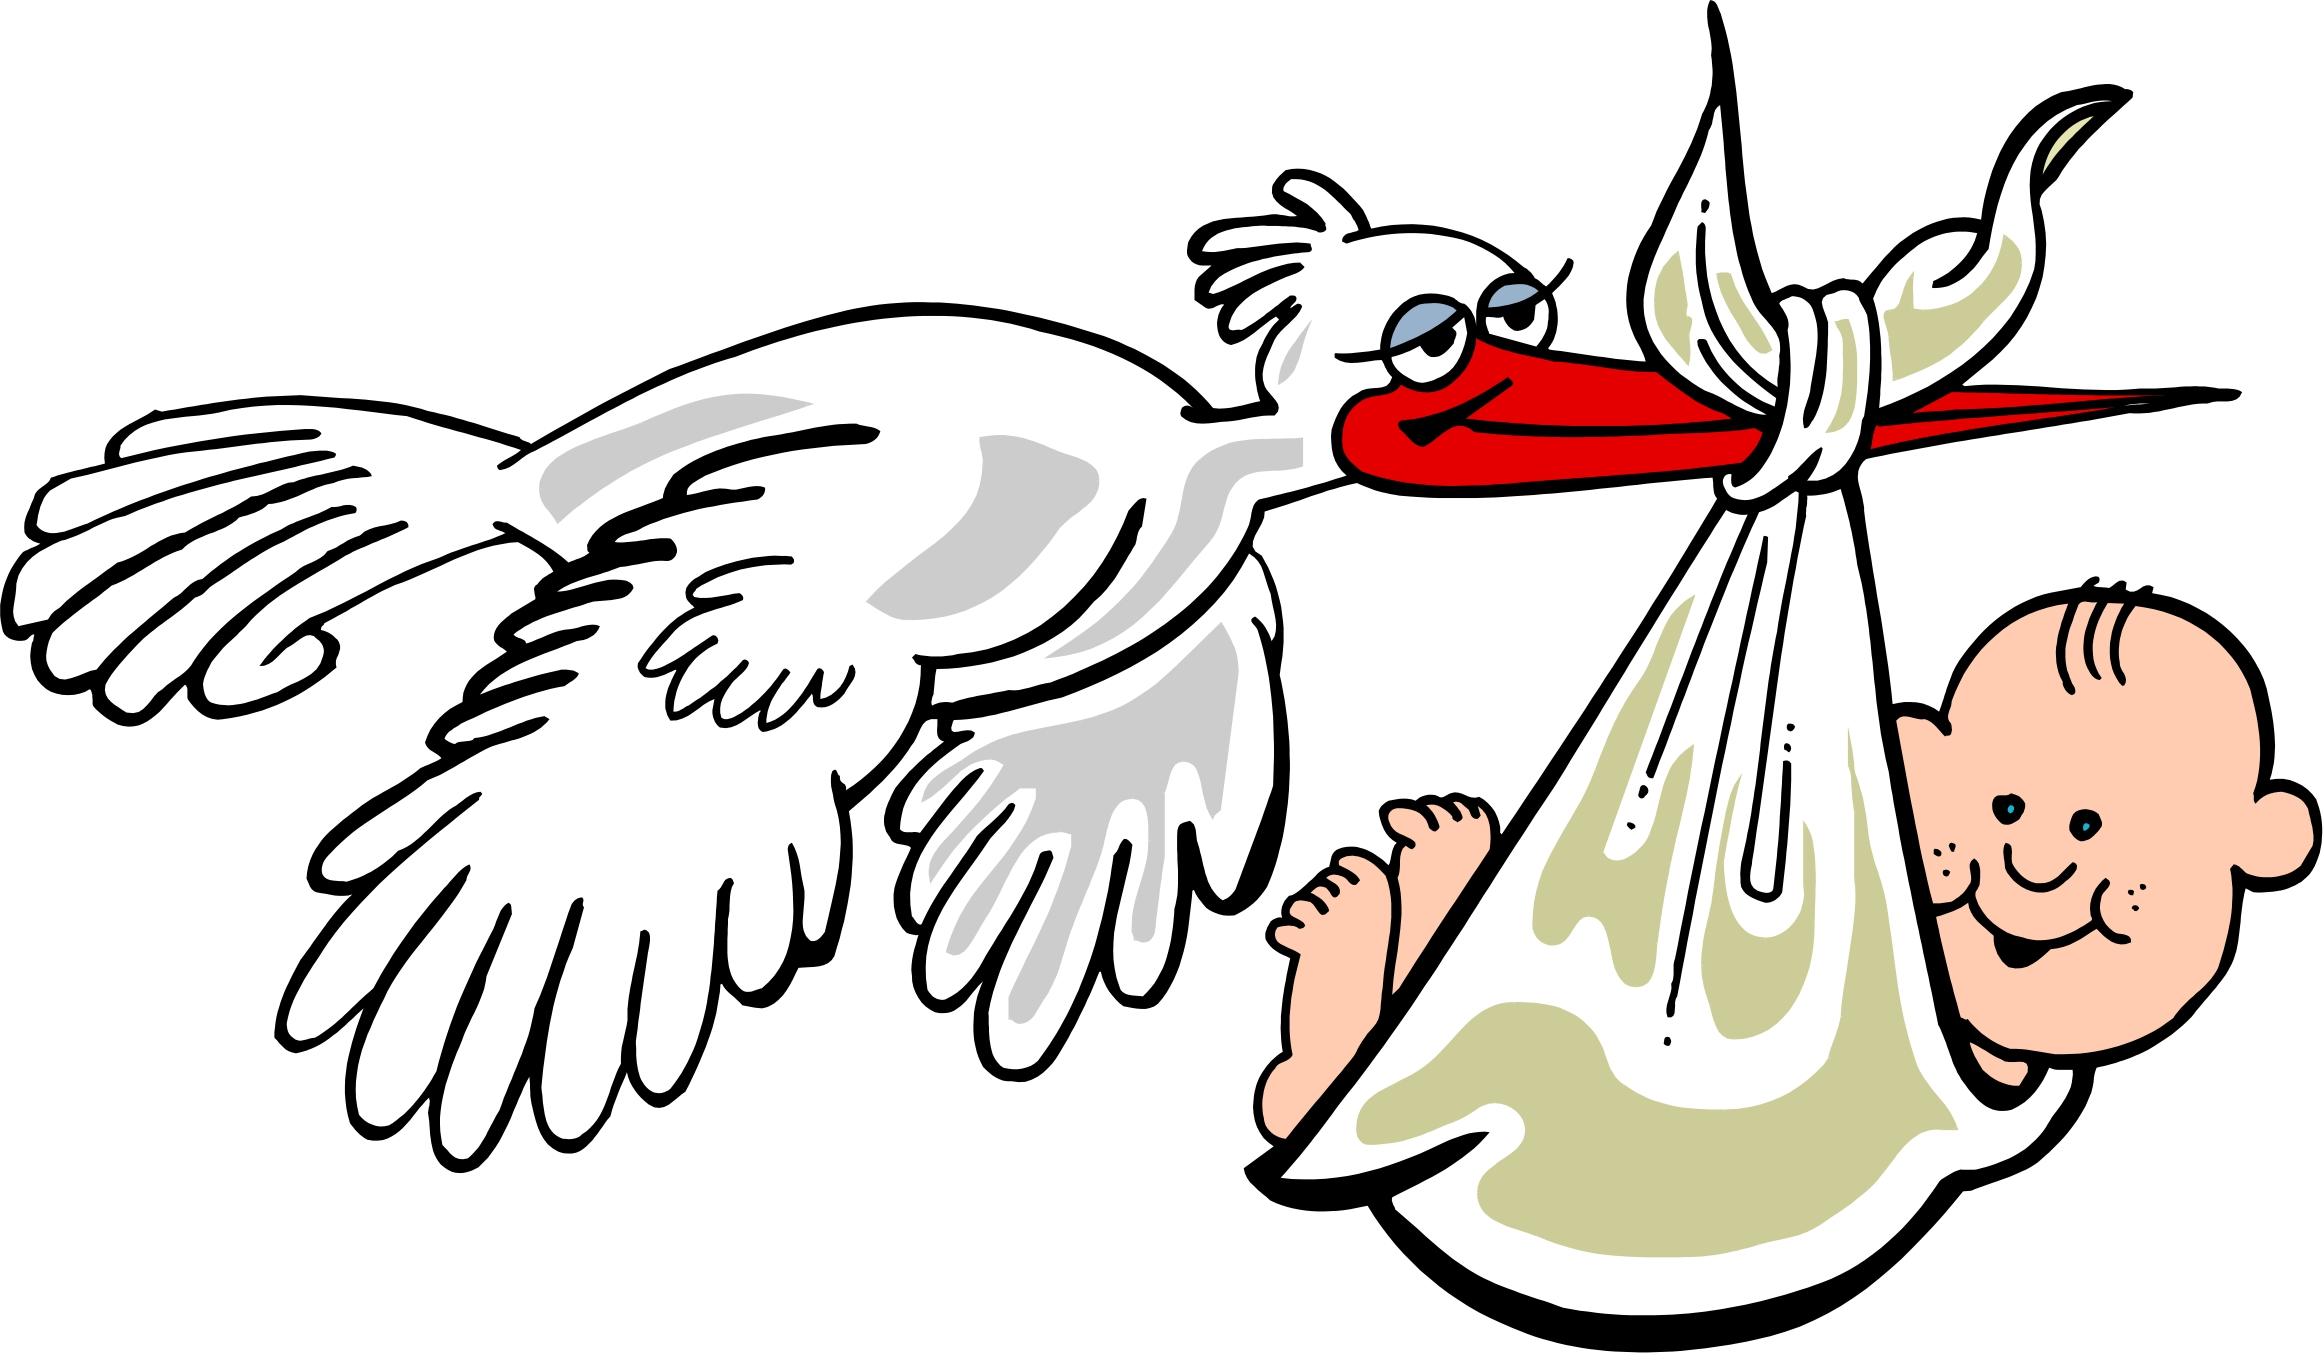 Baby Stork Cartoon - ClipArt Best - ClipArt Best